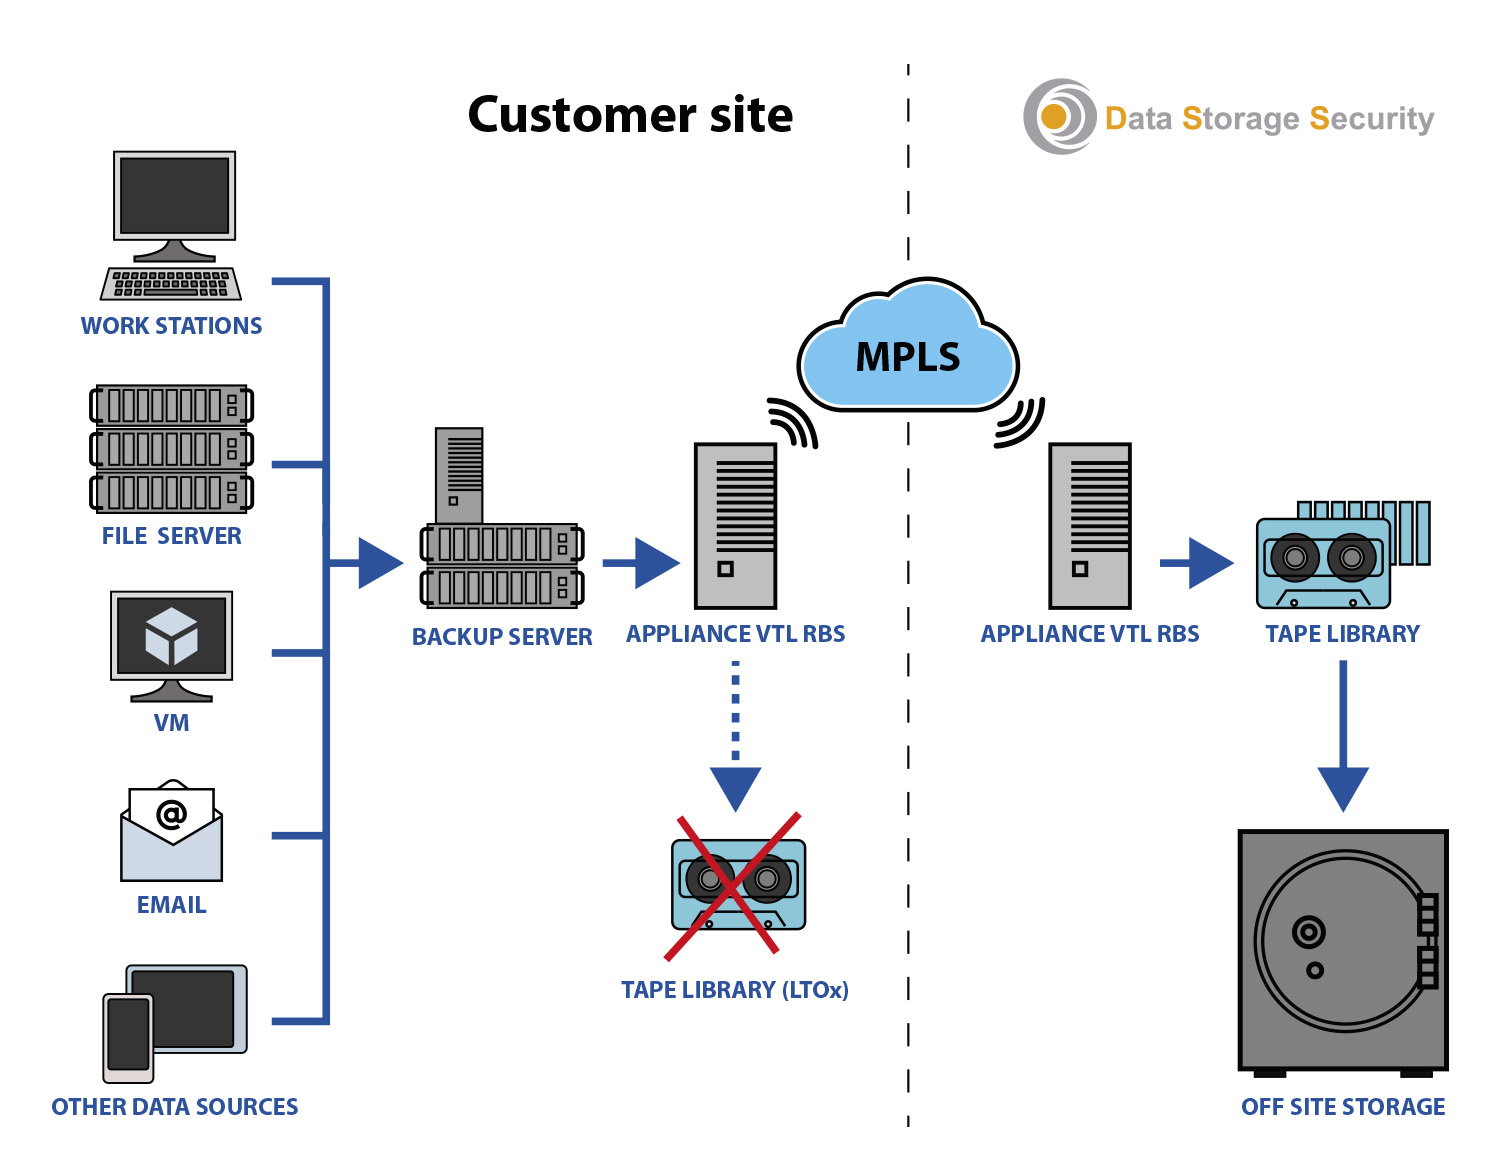 Data Storage Security - MPLS service